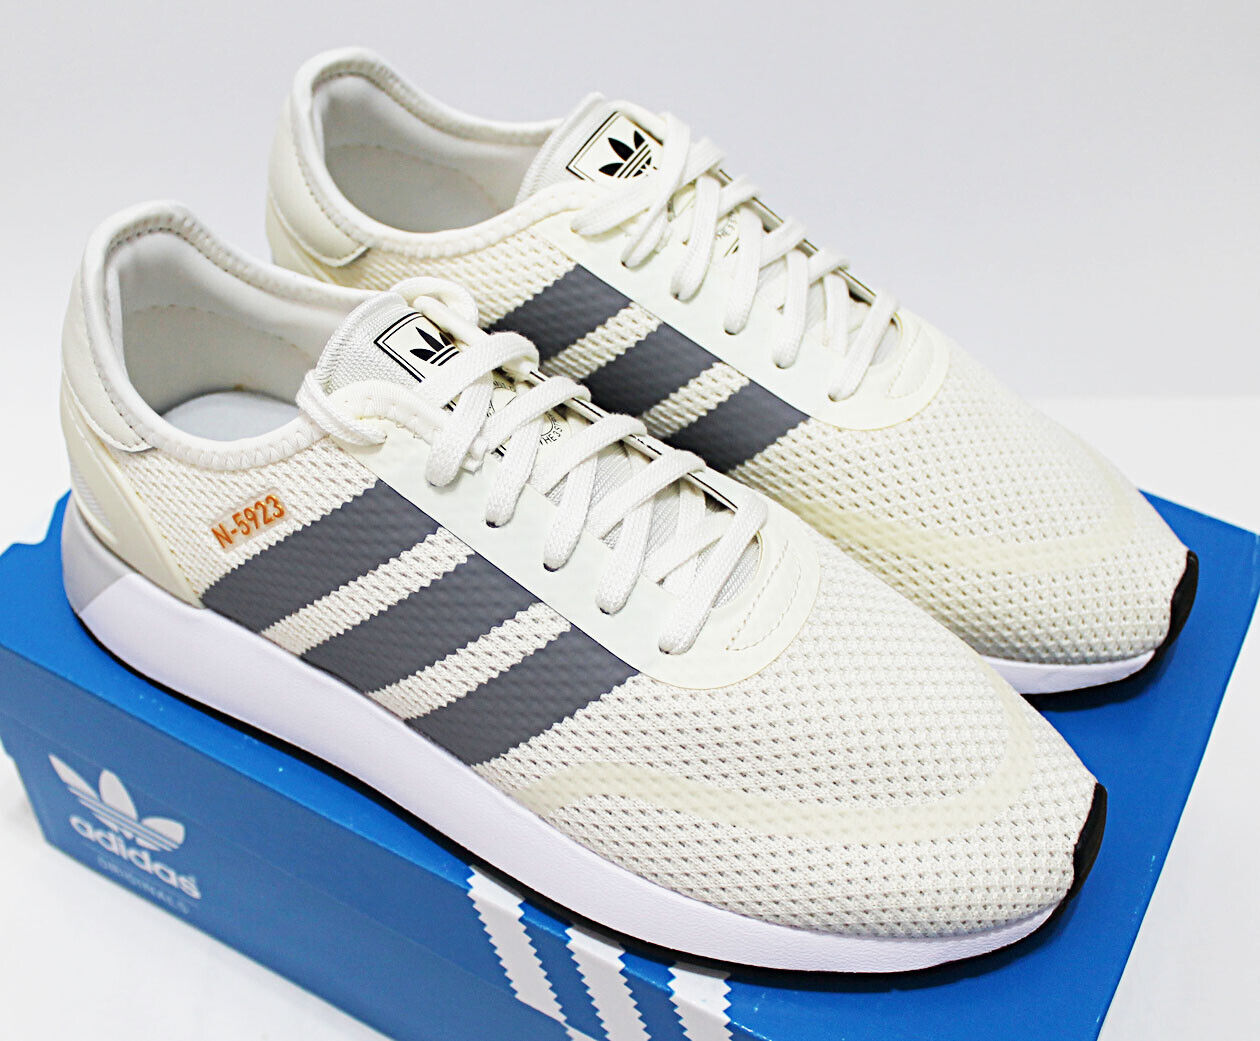 2ee1bd534a0 $90 NIB ADIDAS N-5923 Men's Cream-White-Grey Low Sneakers Trainers running  shoes